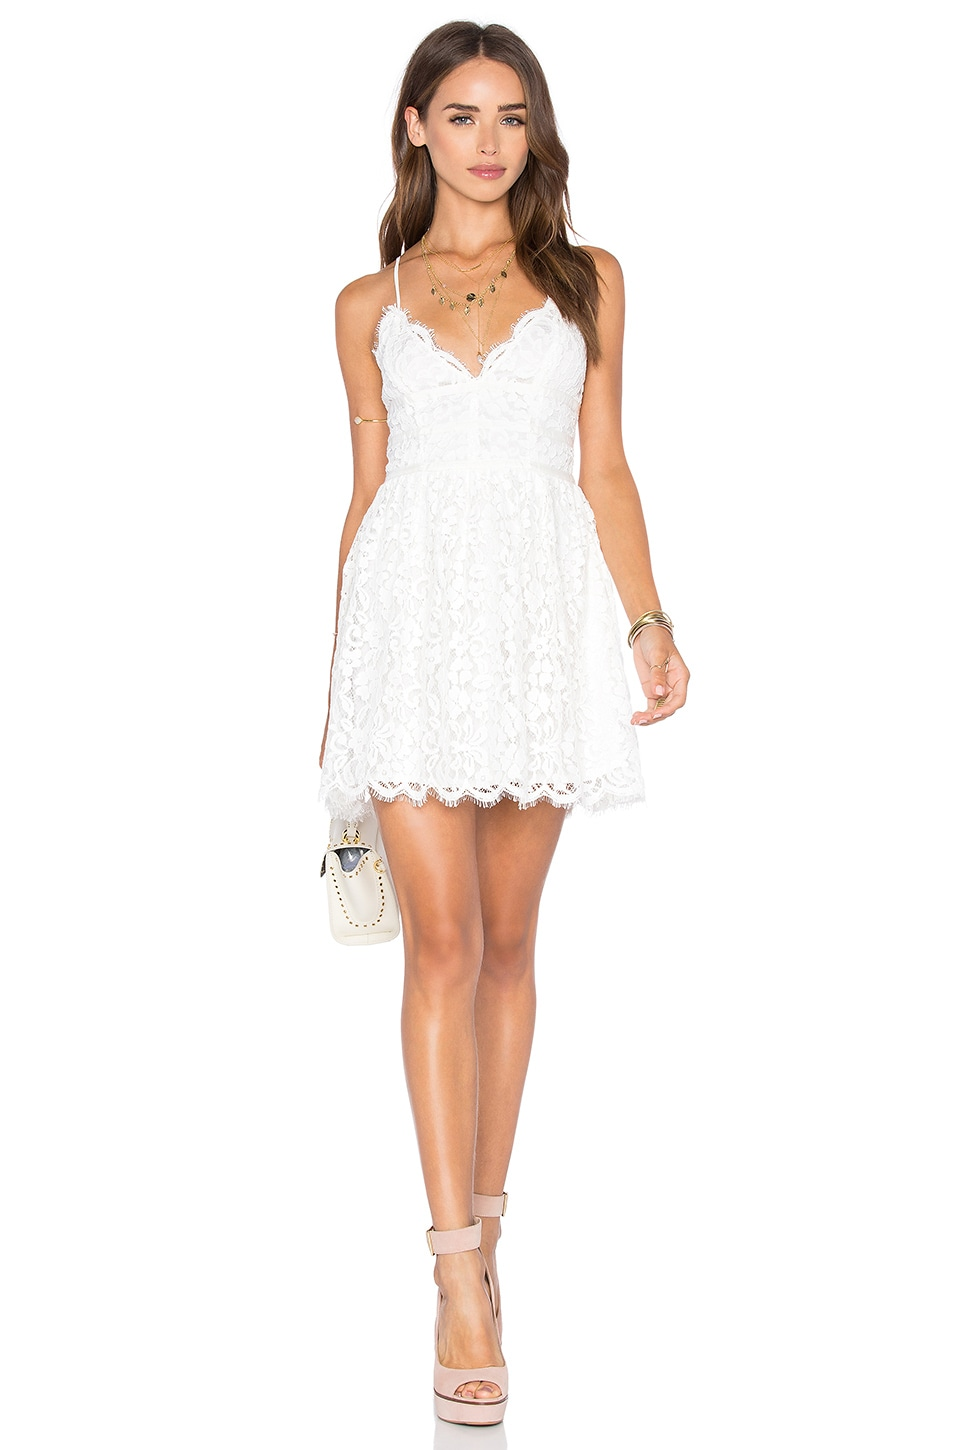 NBD x REVOLVE Give It Up Dress in Ivory